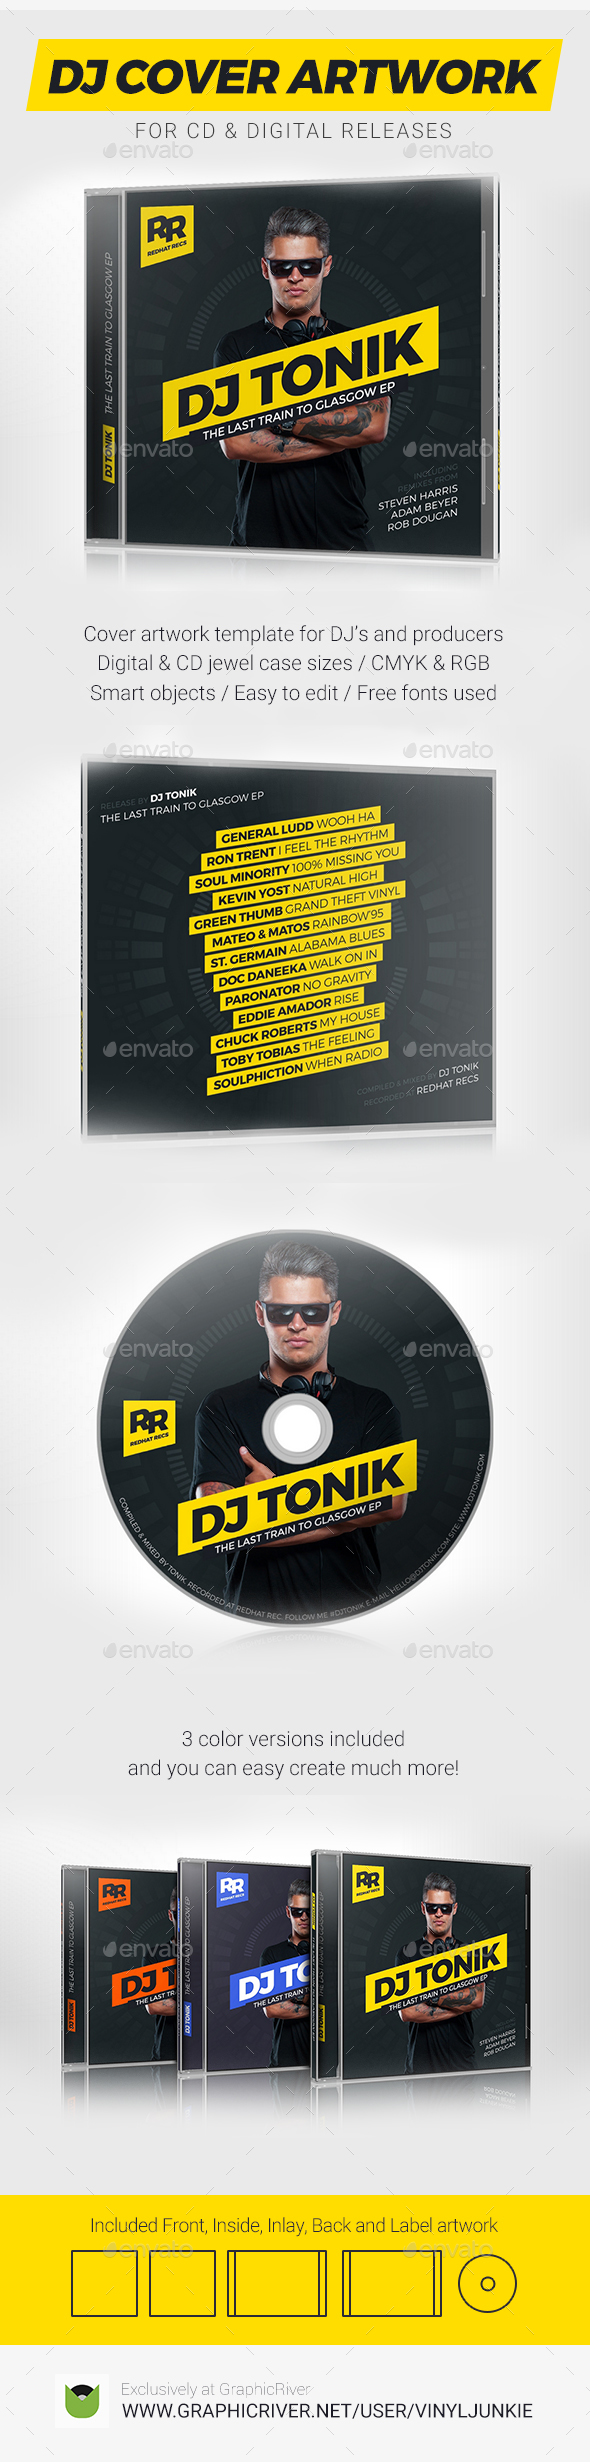 ProDJ DJ Mix Album CD Cover Artwork PSD Template by vinyljunkie – Psd Album Cover Template